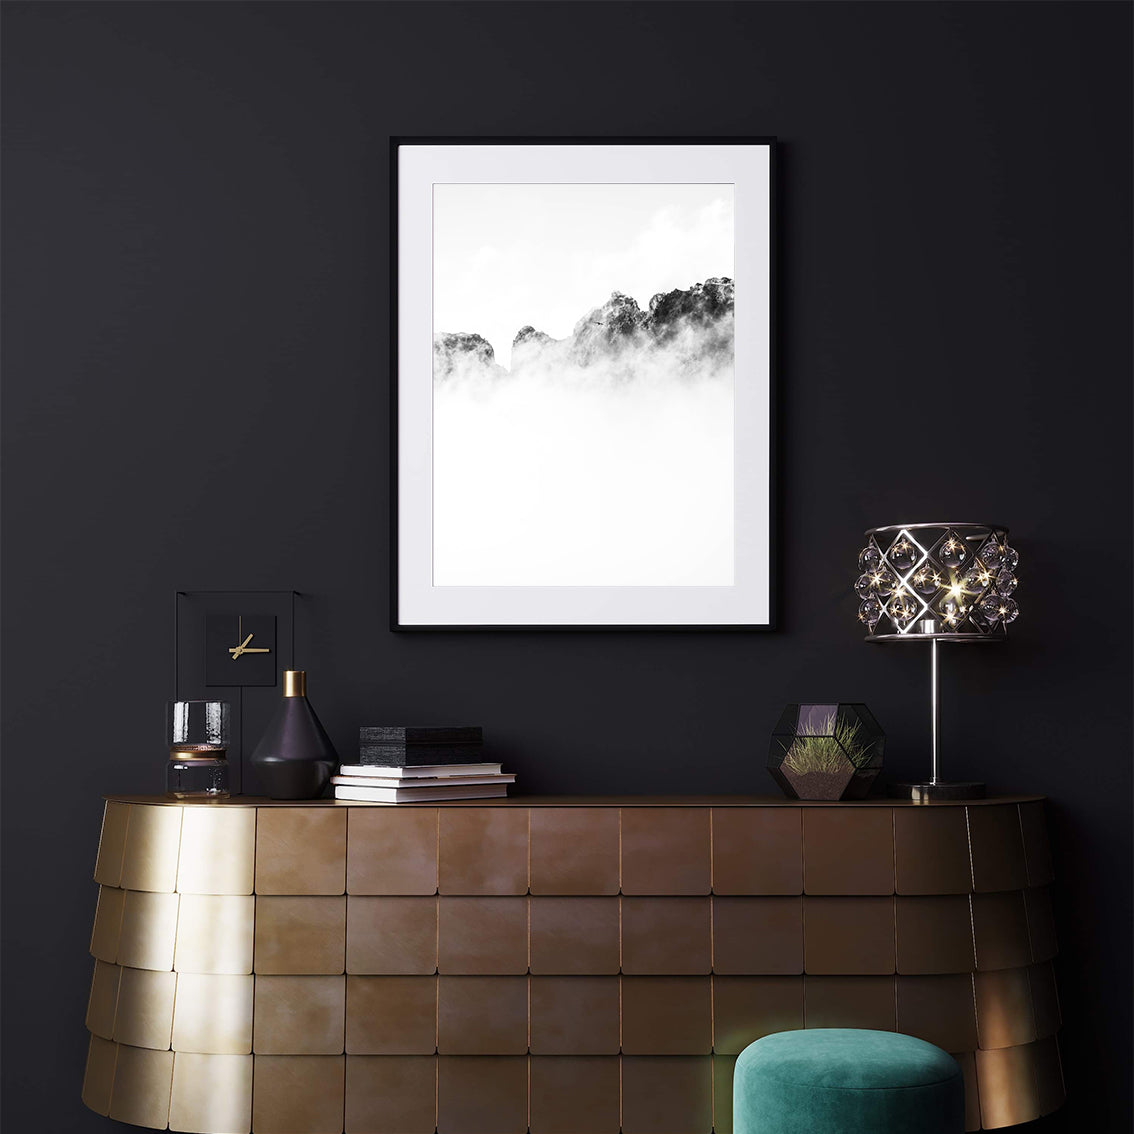 Black and white photo poster print with a bird flying over cloudy mountains, in living room